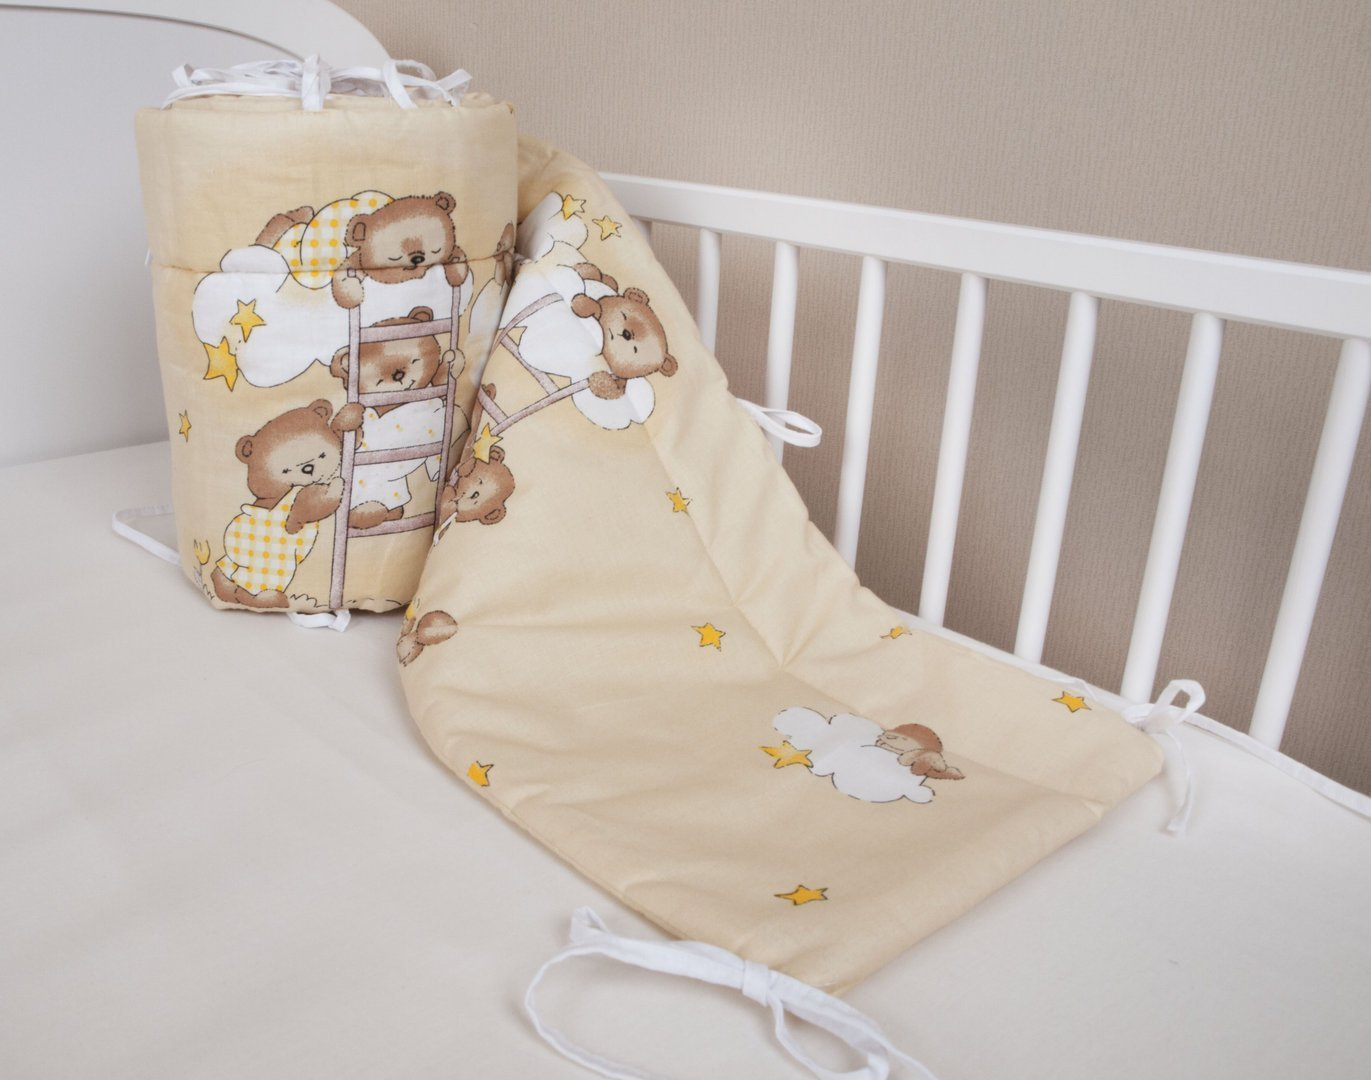 Amilian® Baby Cot Bumper Wrap Around Protection For Baby's Bed With Head Guard 100% hypo-Allergenic 100% Cotton Breathable and non-toxic materials Anti-allergic Teddy Bear Print Beige/Ecru Available In 3 Sizes (420 cm x 30 cm) (360 cm 30 cm) (180 cm x 30